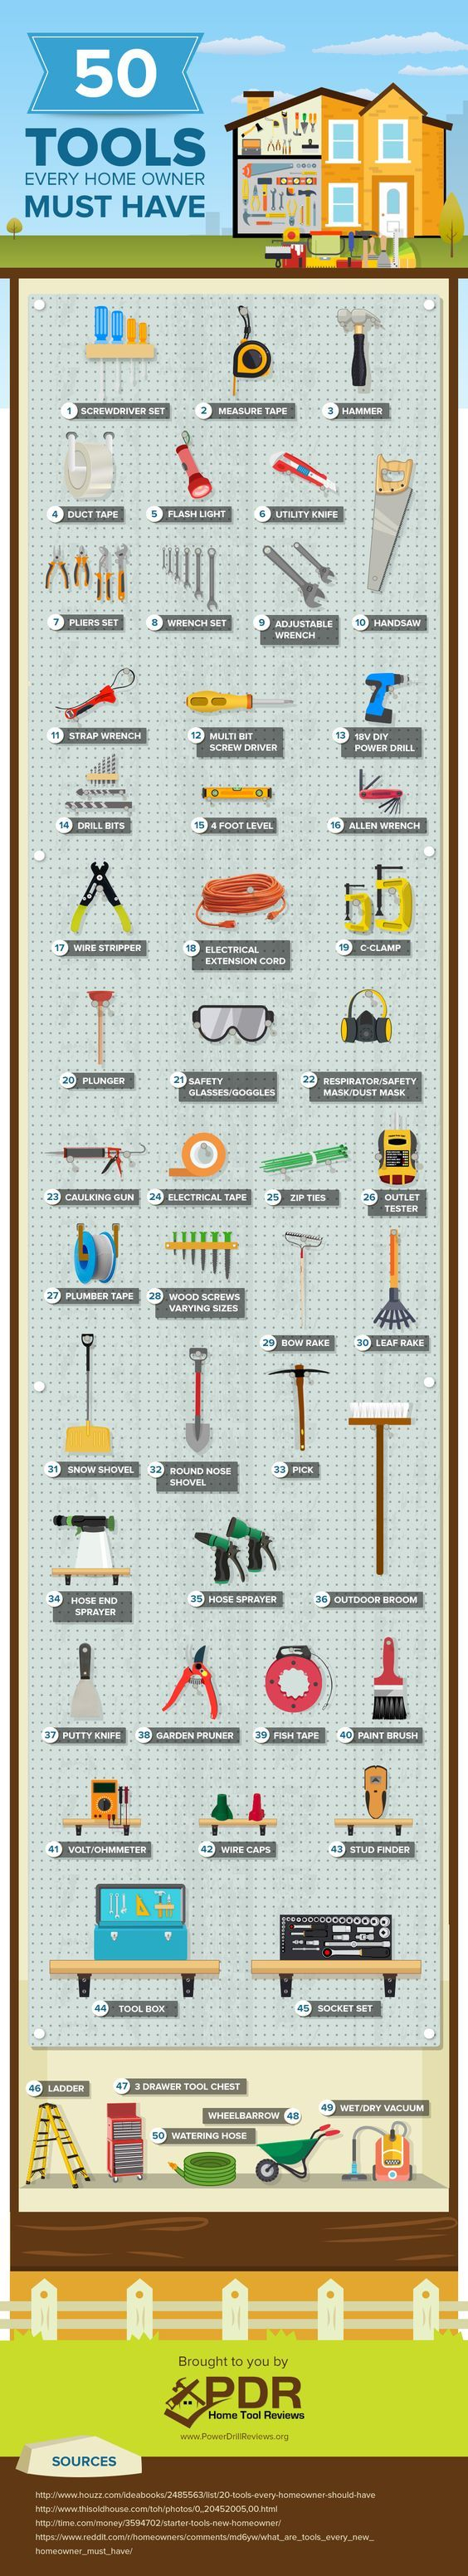 [Infographic] 50 Tools Every Home Owner Must Have